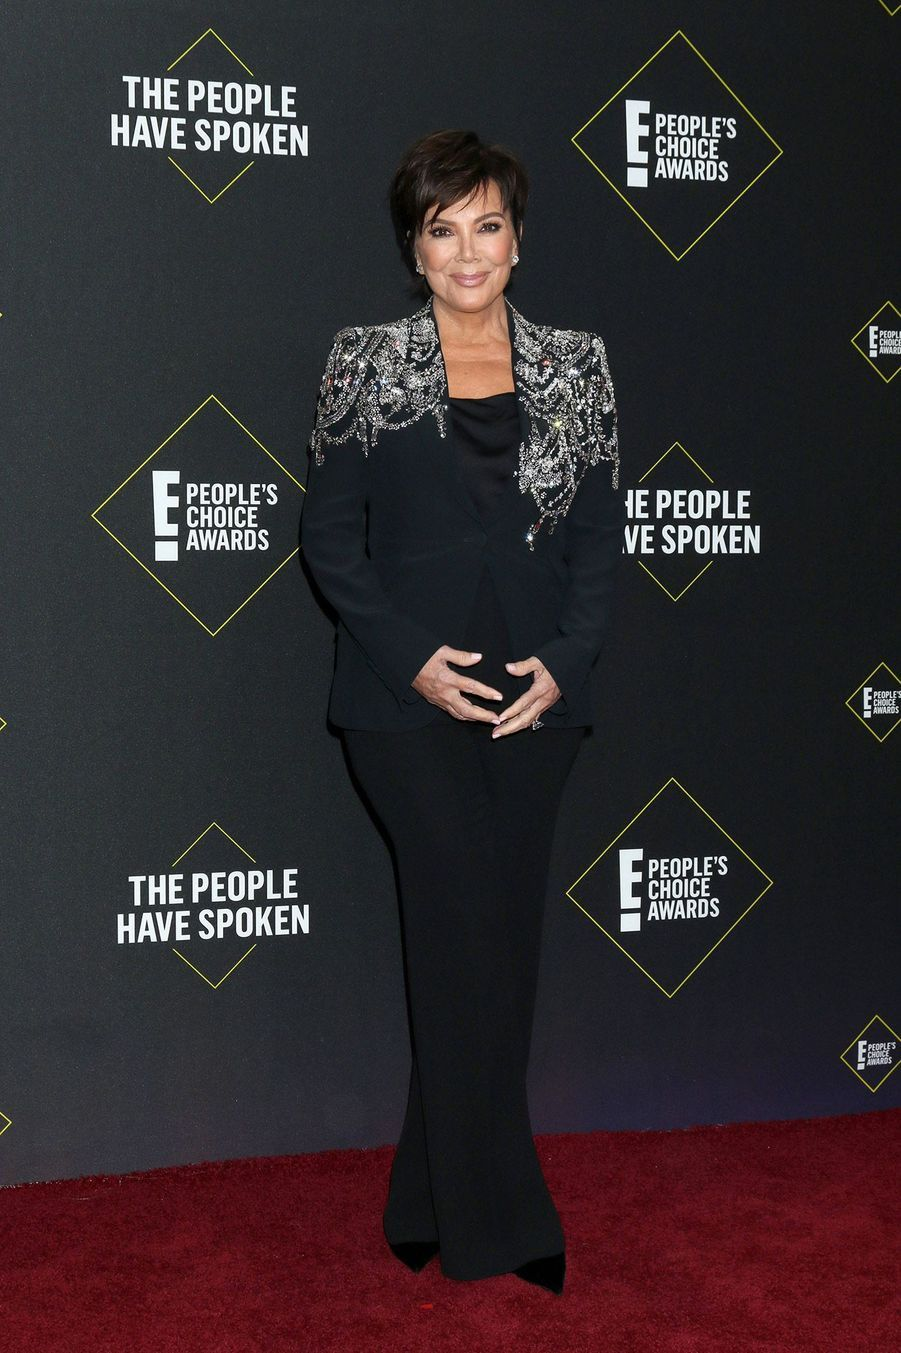 Kris Jenner à la 45ème cérémonie des People's Choice Awards, à Santa Monica (Californie), le 10 novembre 2019.